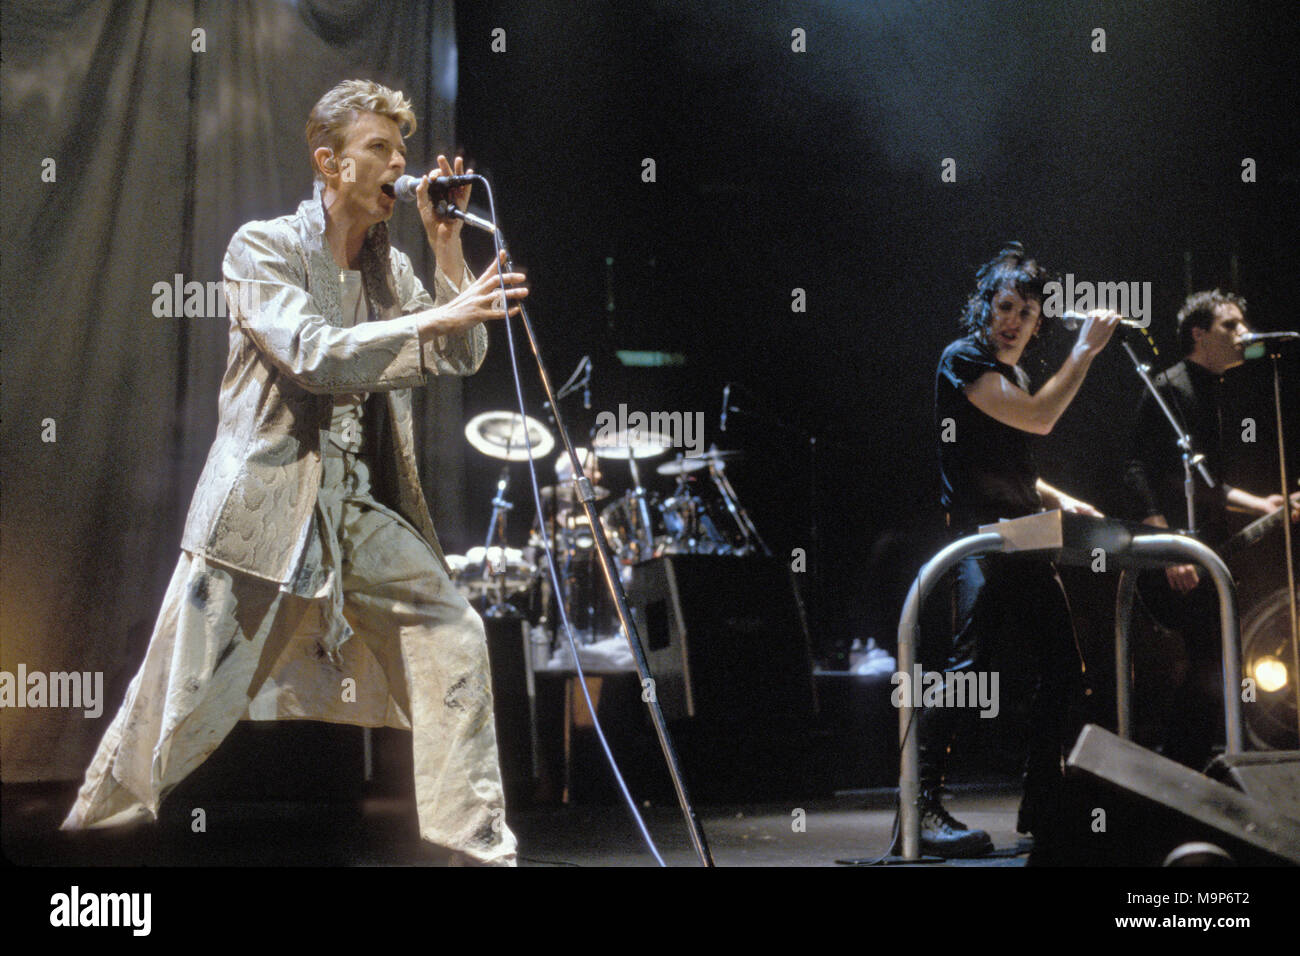 East Rutherford Nj September 27 David Bowie Performs With Trent